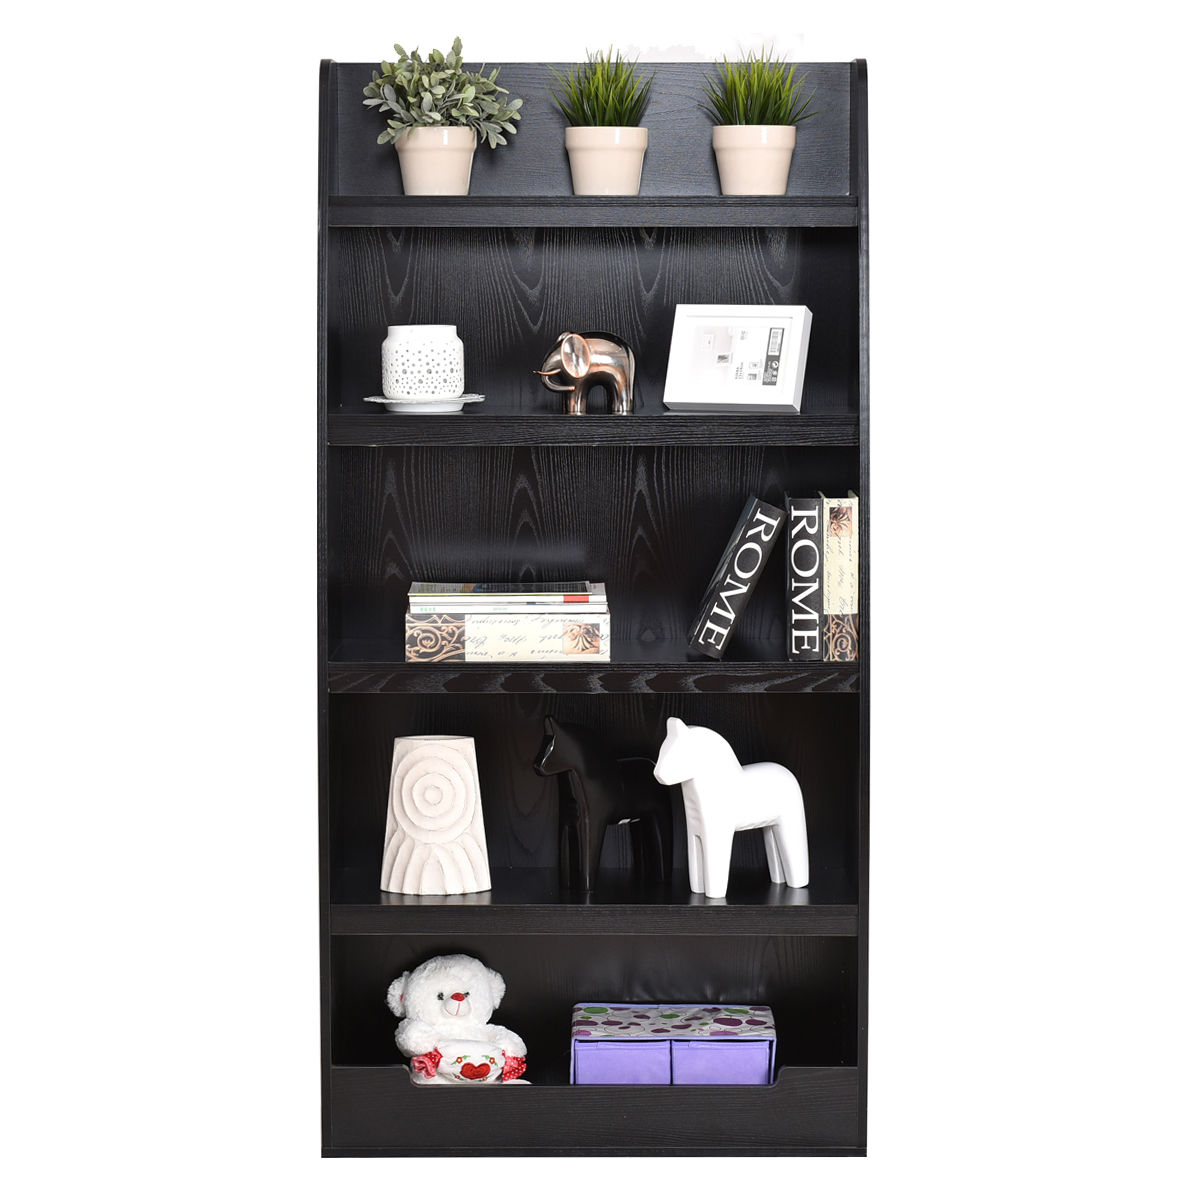 Giantex 5 Layers Bookcases Modern Living Room Bookshelf Storage Display Shelves Wooden Home Office Furniture HW55011